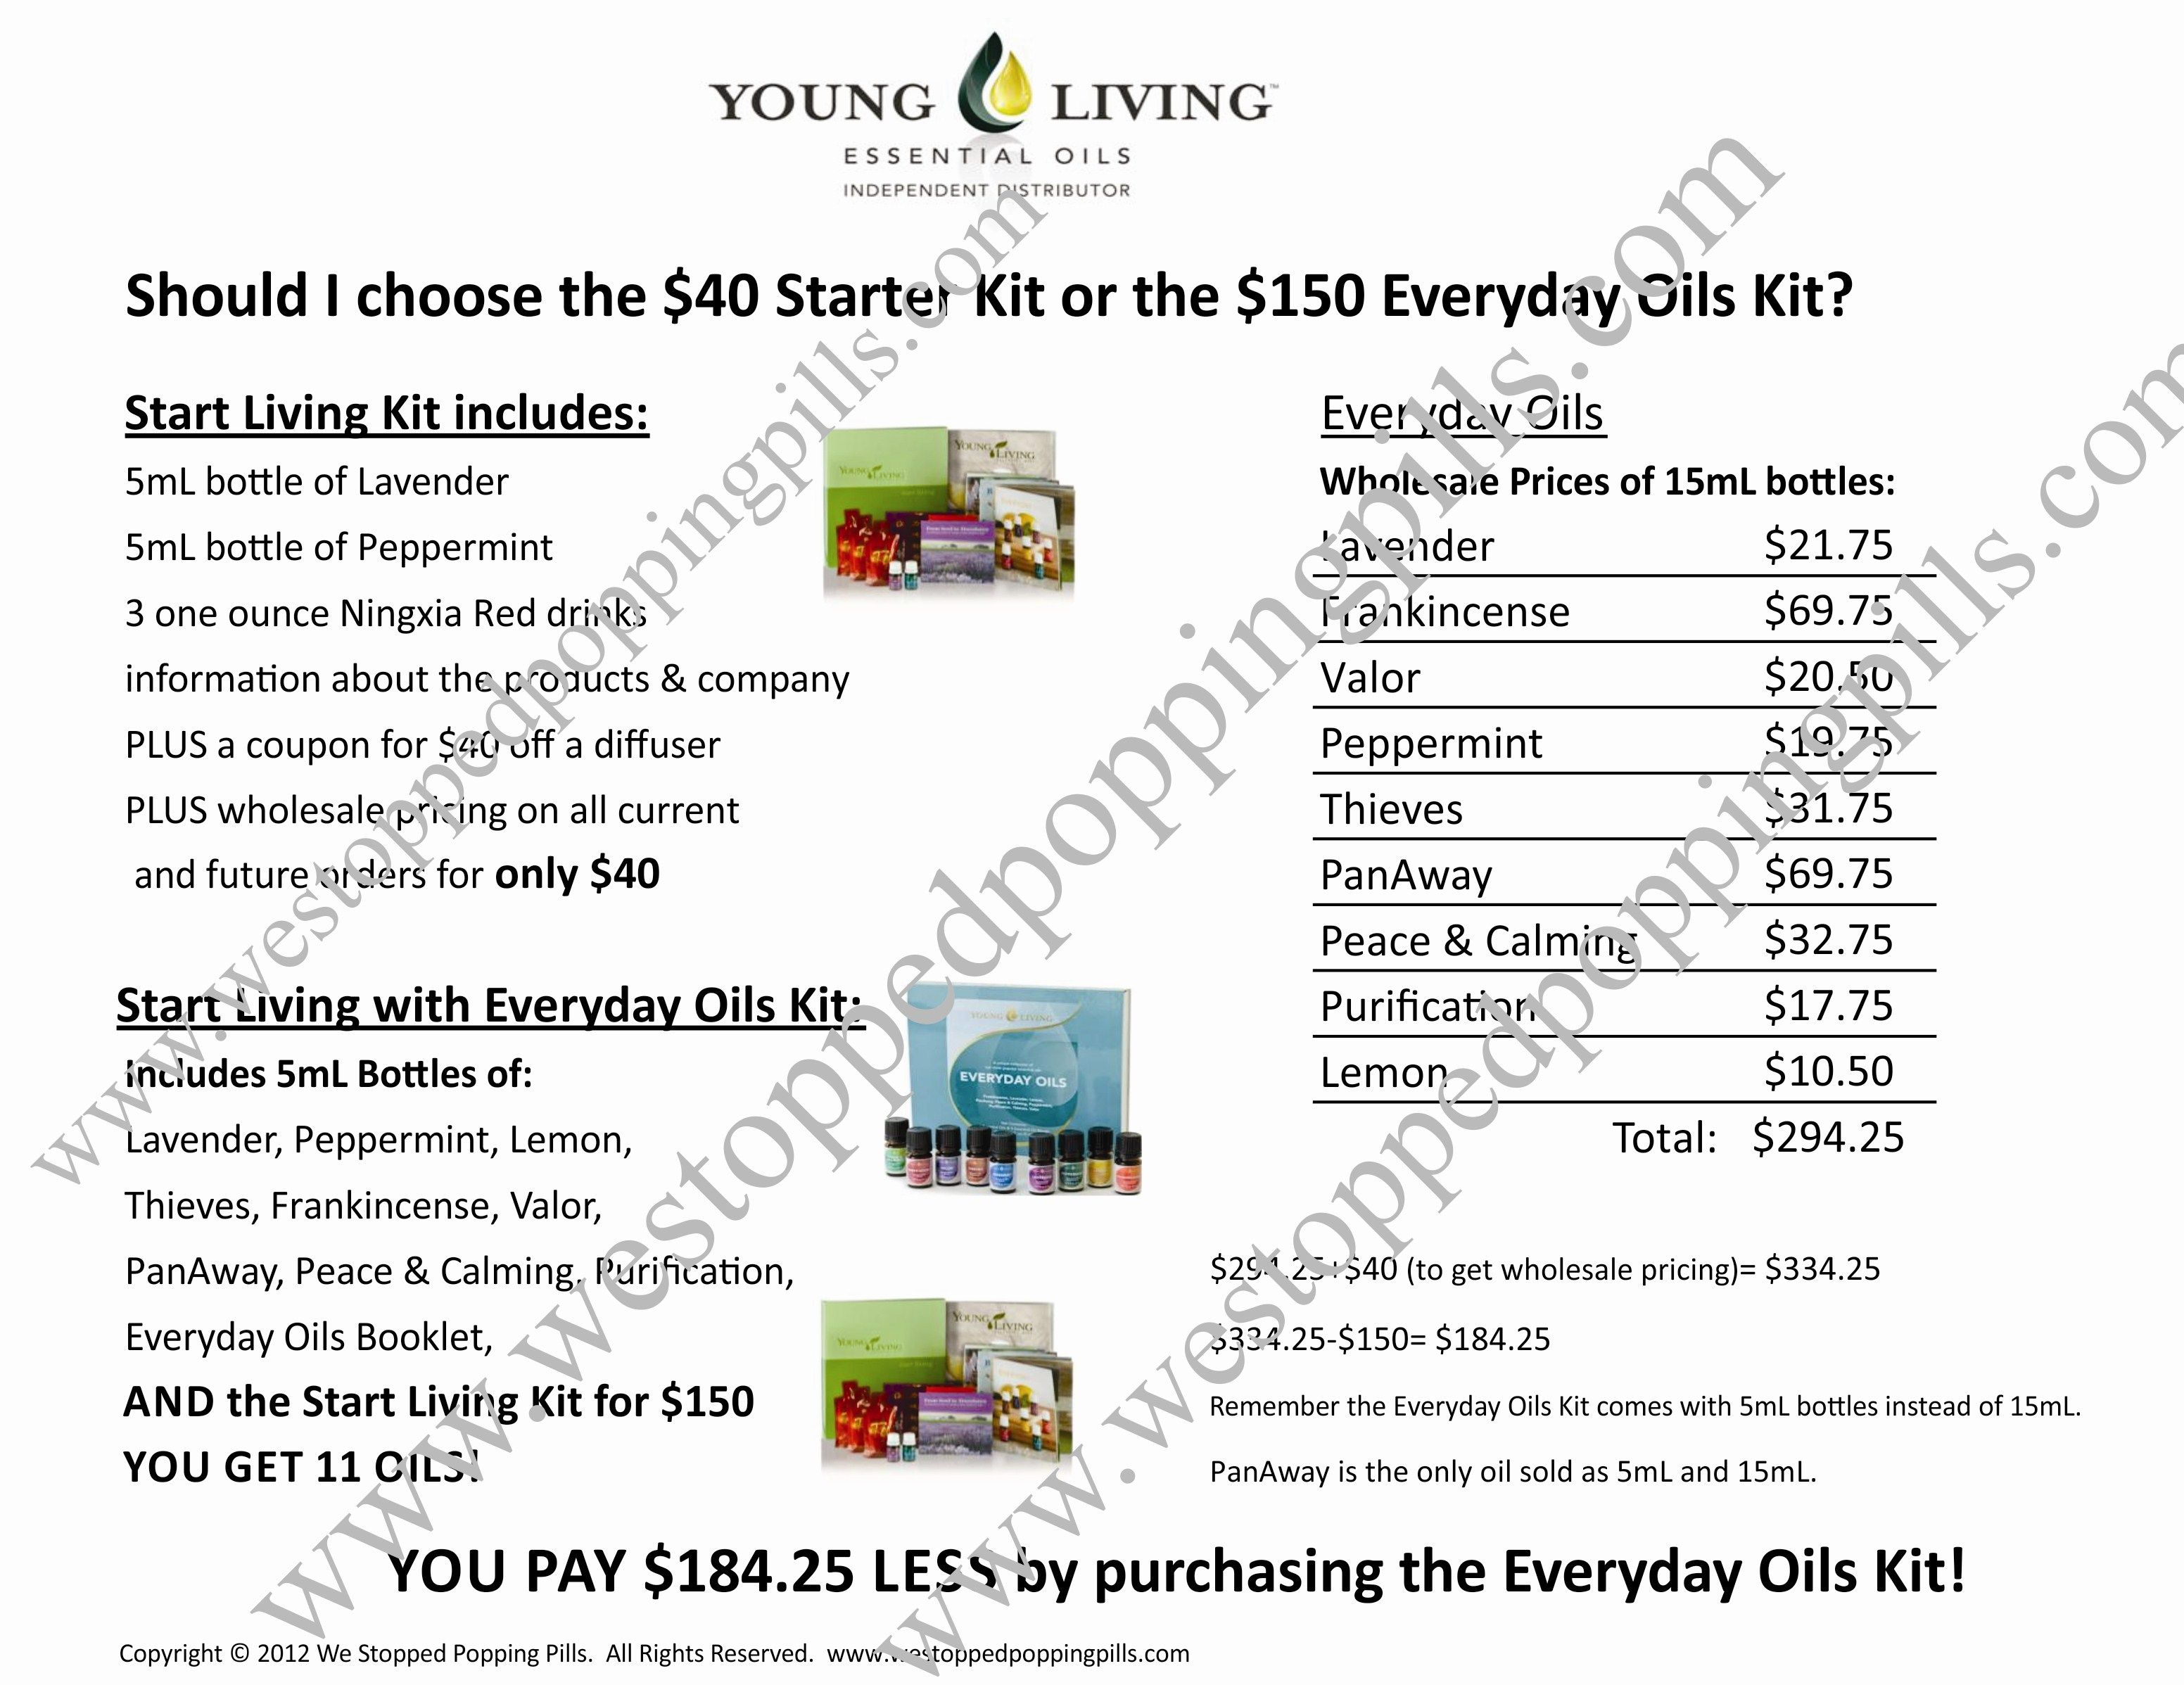 pdf worksheets for YL business